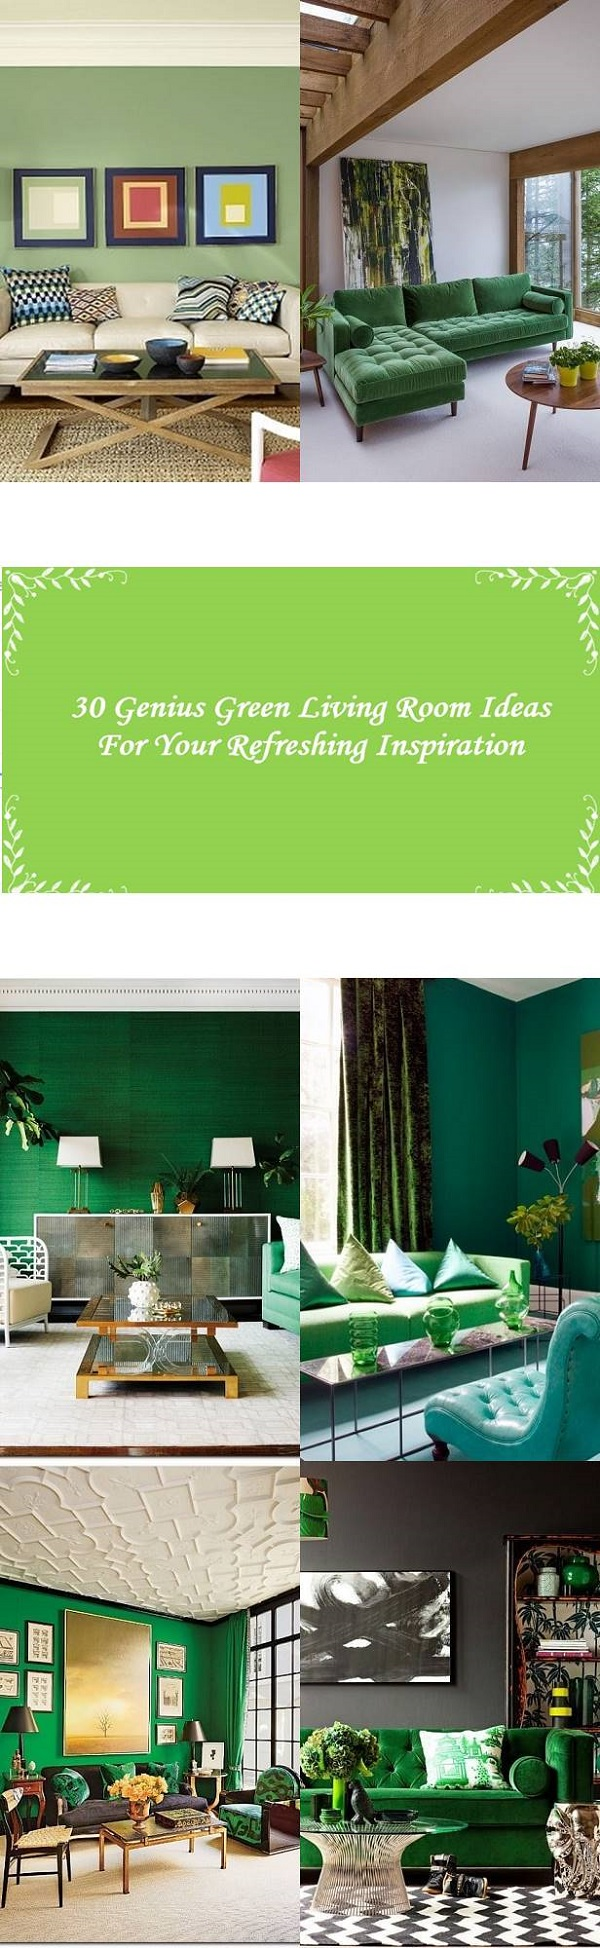 30 Genius Green Living Room Ideas Of 2017 For Your Ultimate Inspiration